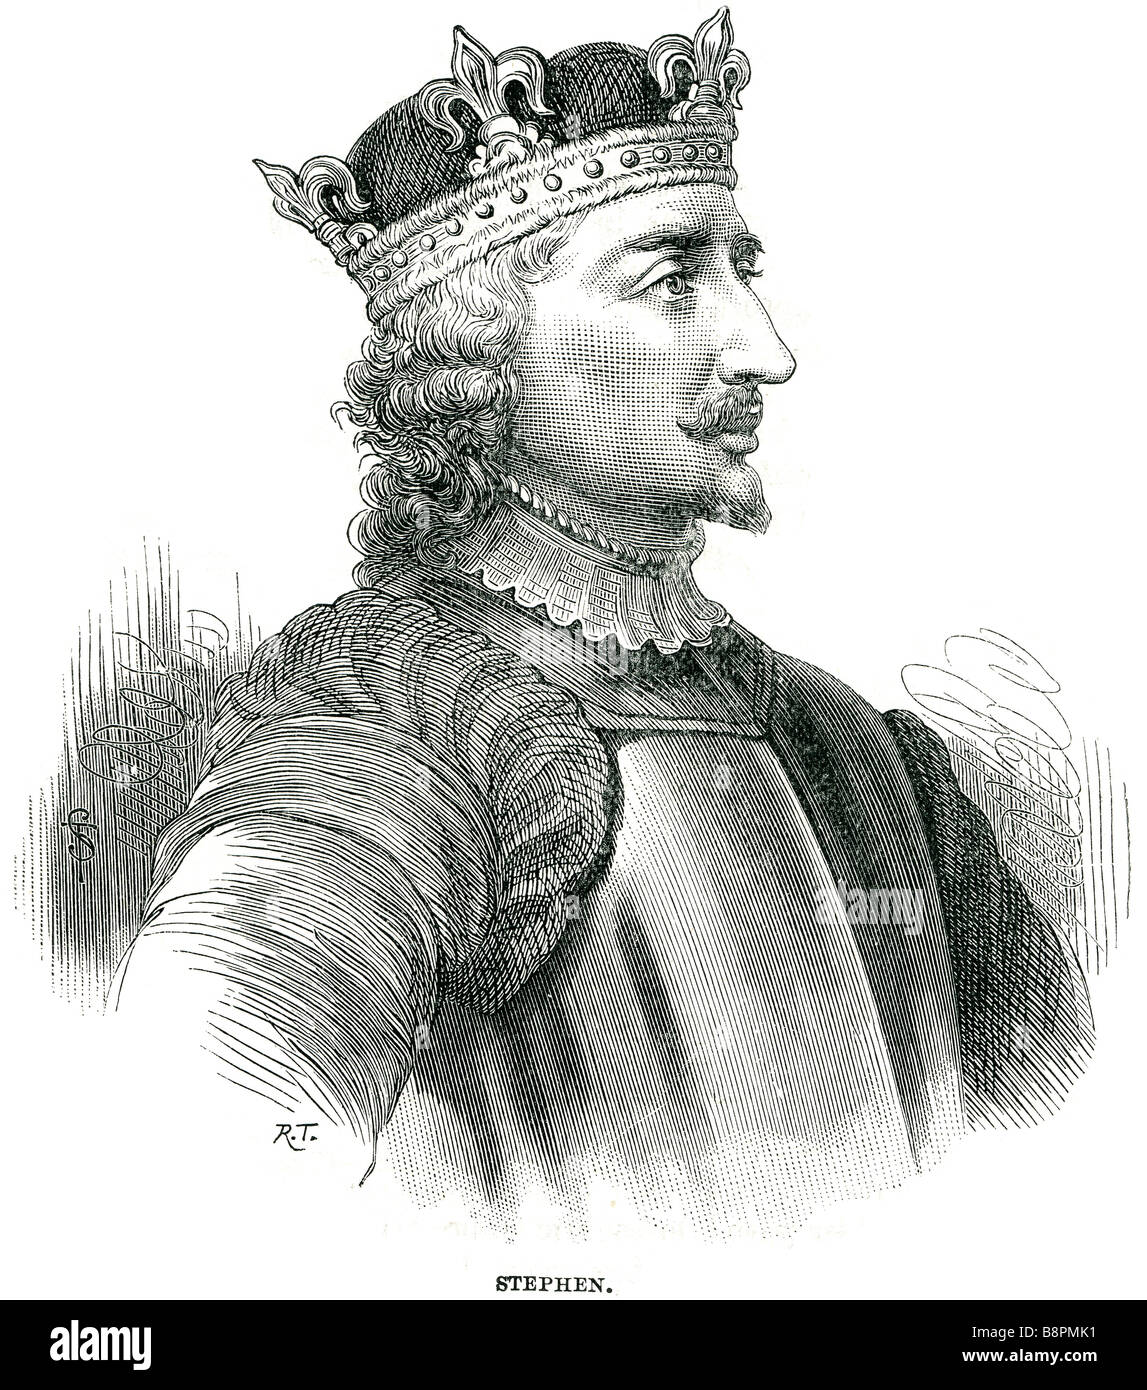 Stephen often known as Stephen of Blois (c. 1096 – 25 October 1154) was a grandson of William the Conqueror. He - Stock Image